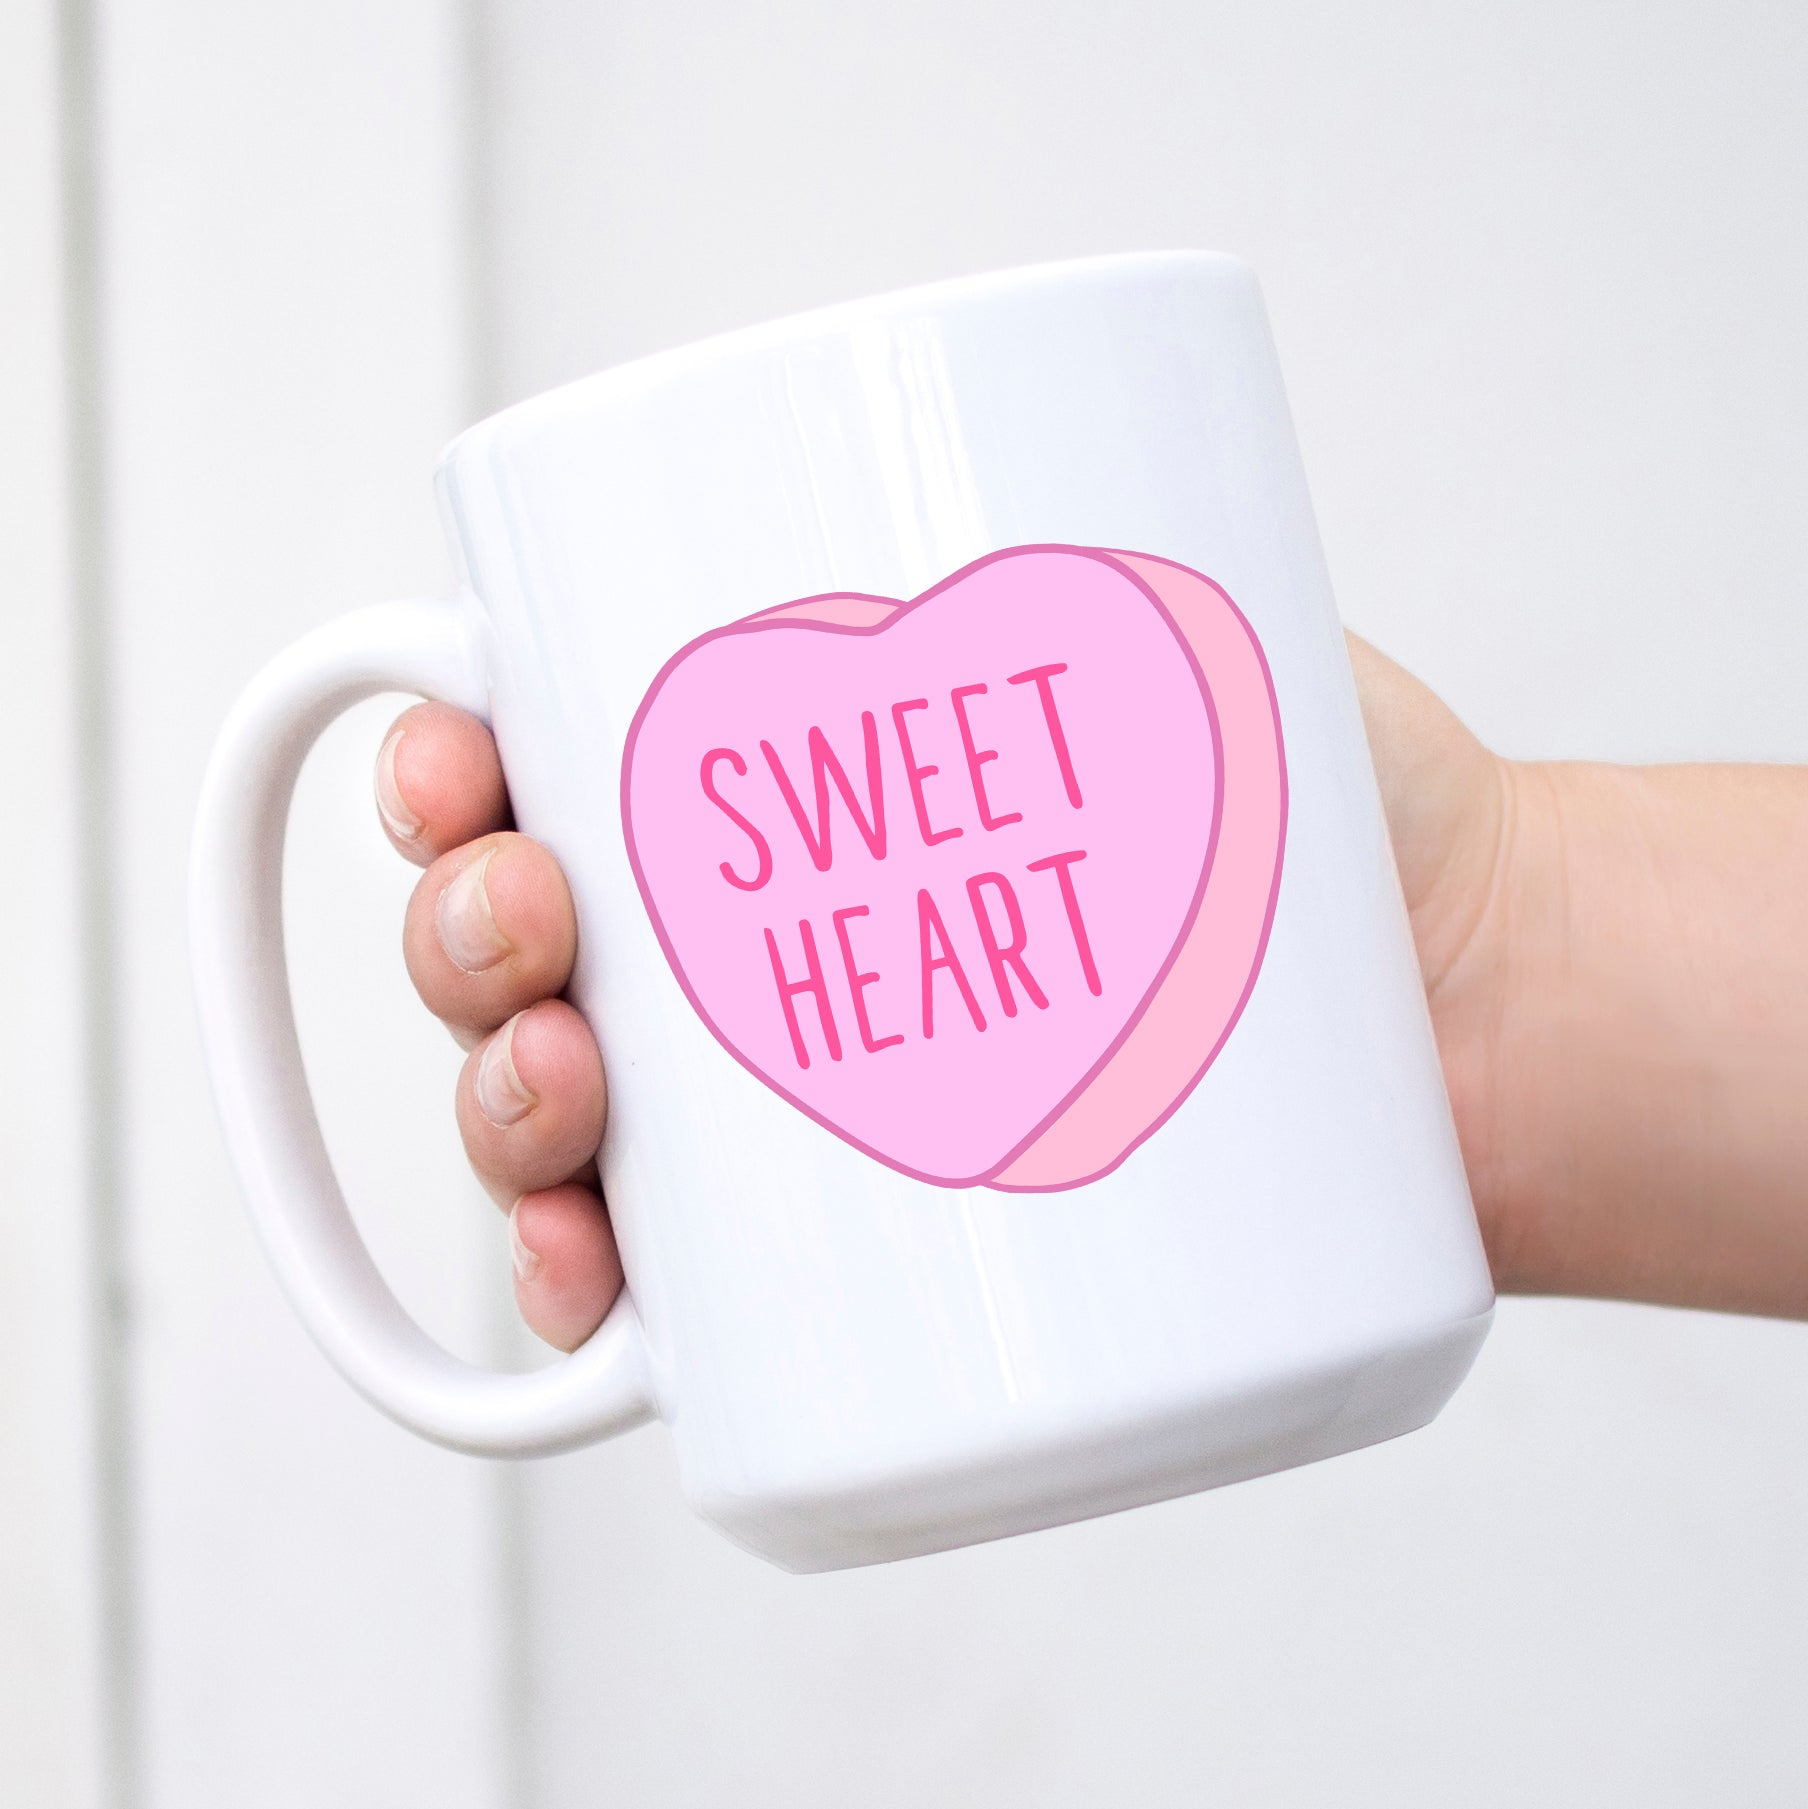 Sweet Heart Conversation Heart Valentine's Day Mug